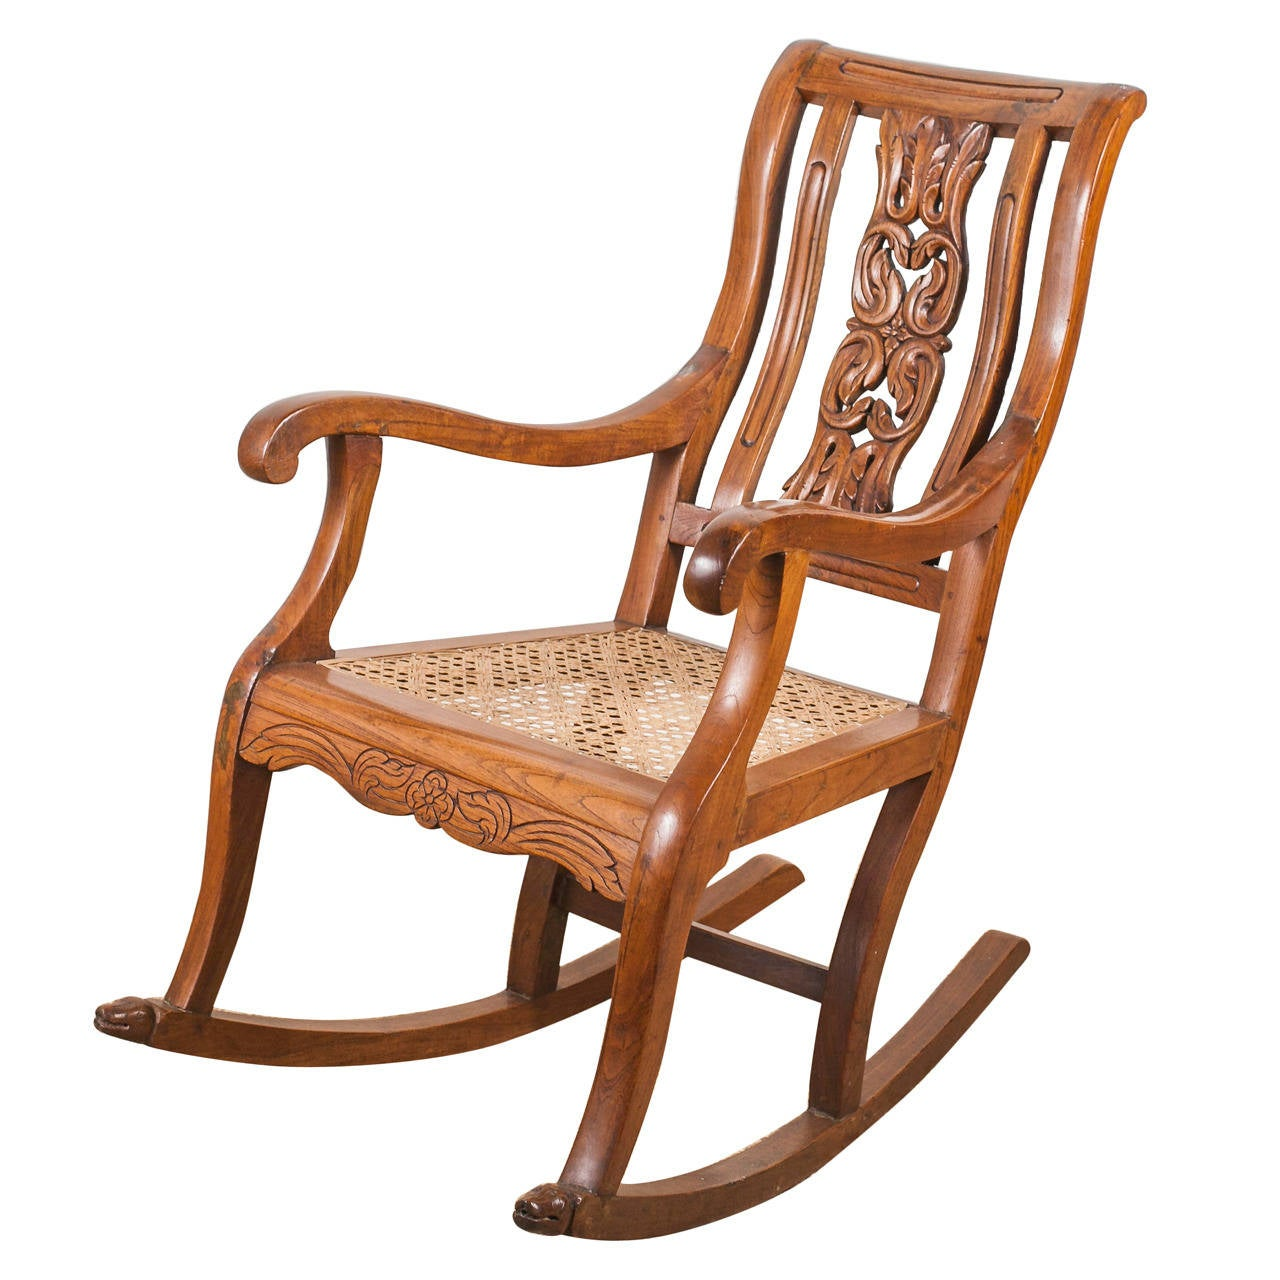 Indo-Portuguese Teak Rocking Chair With Caned Seat At 1stdibs